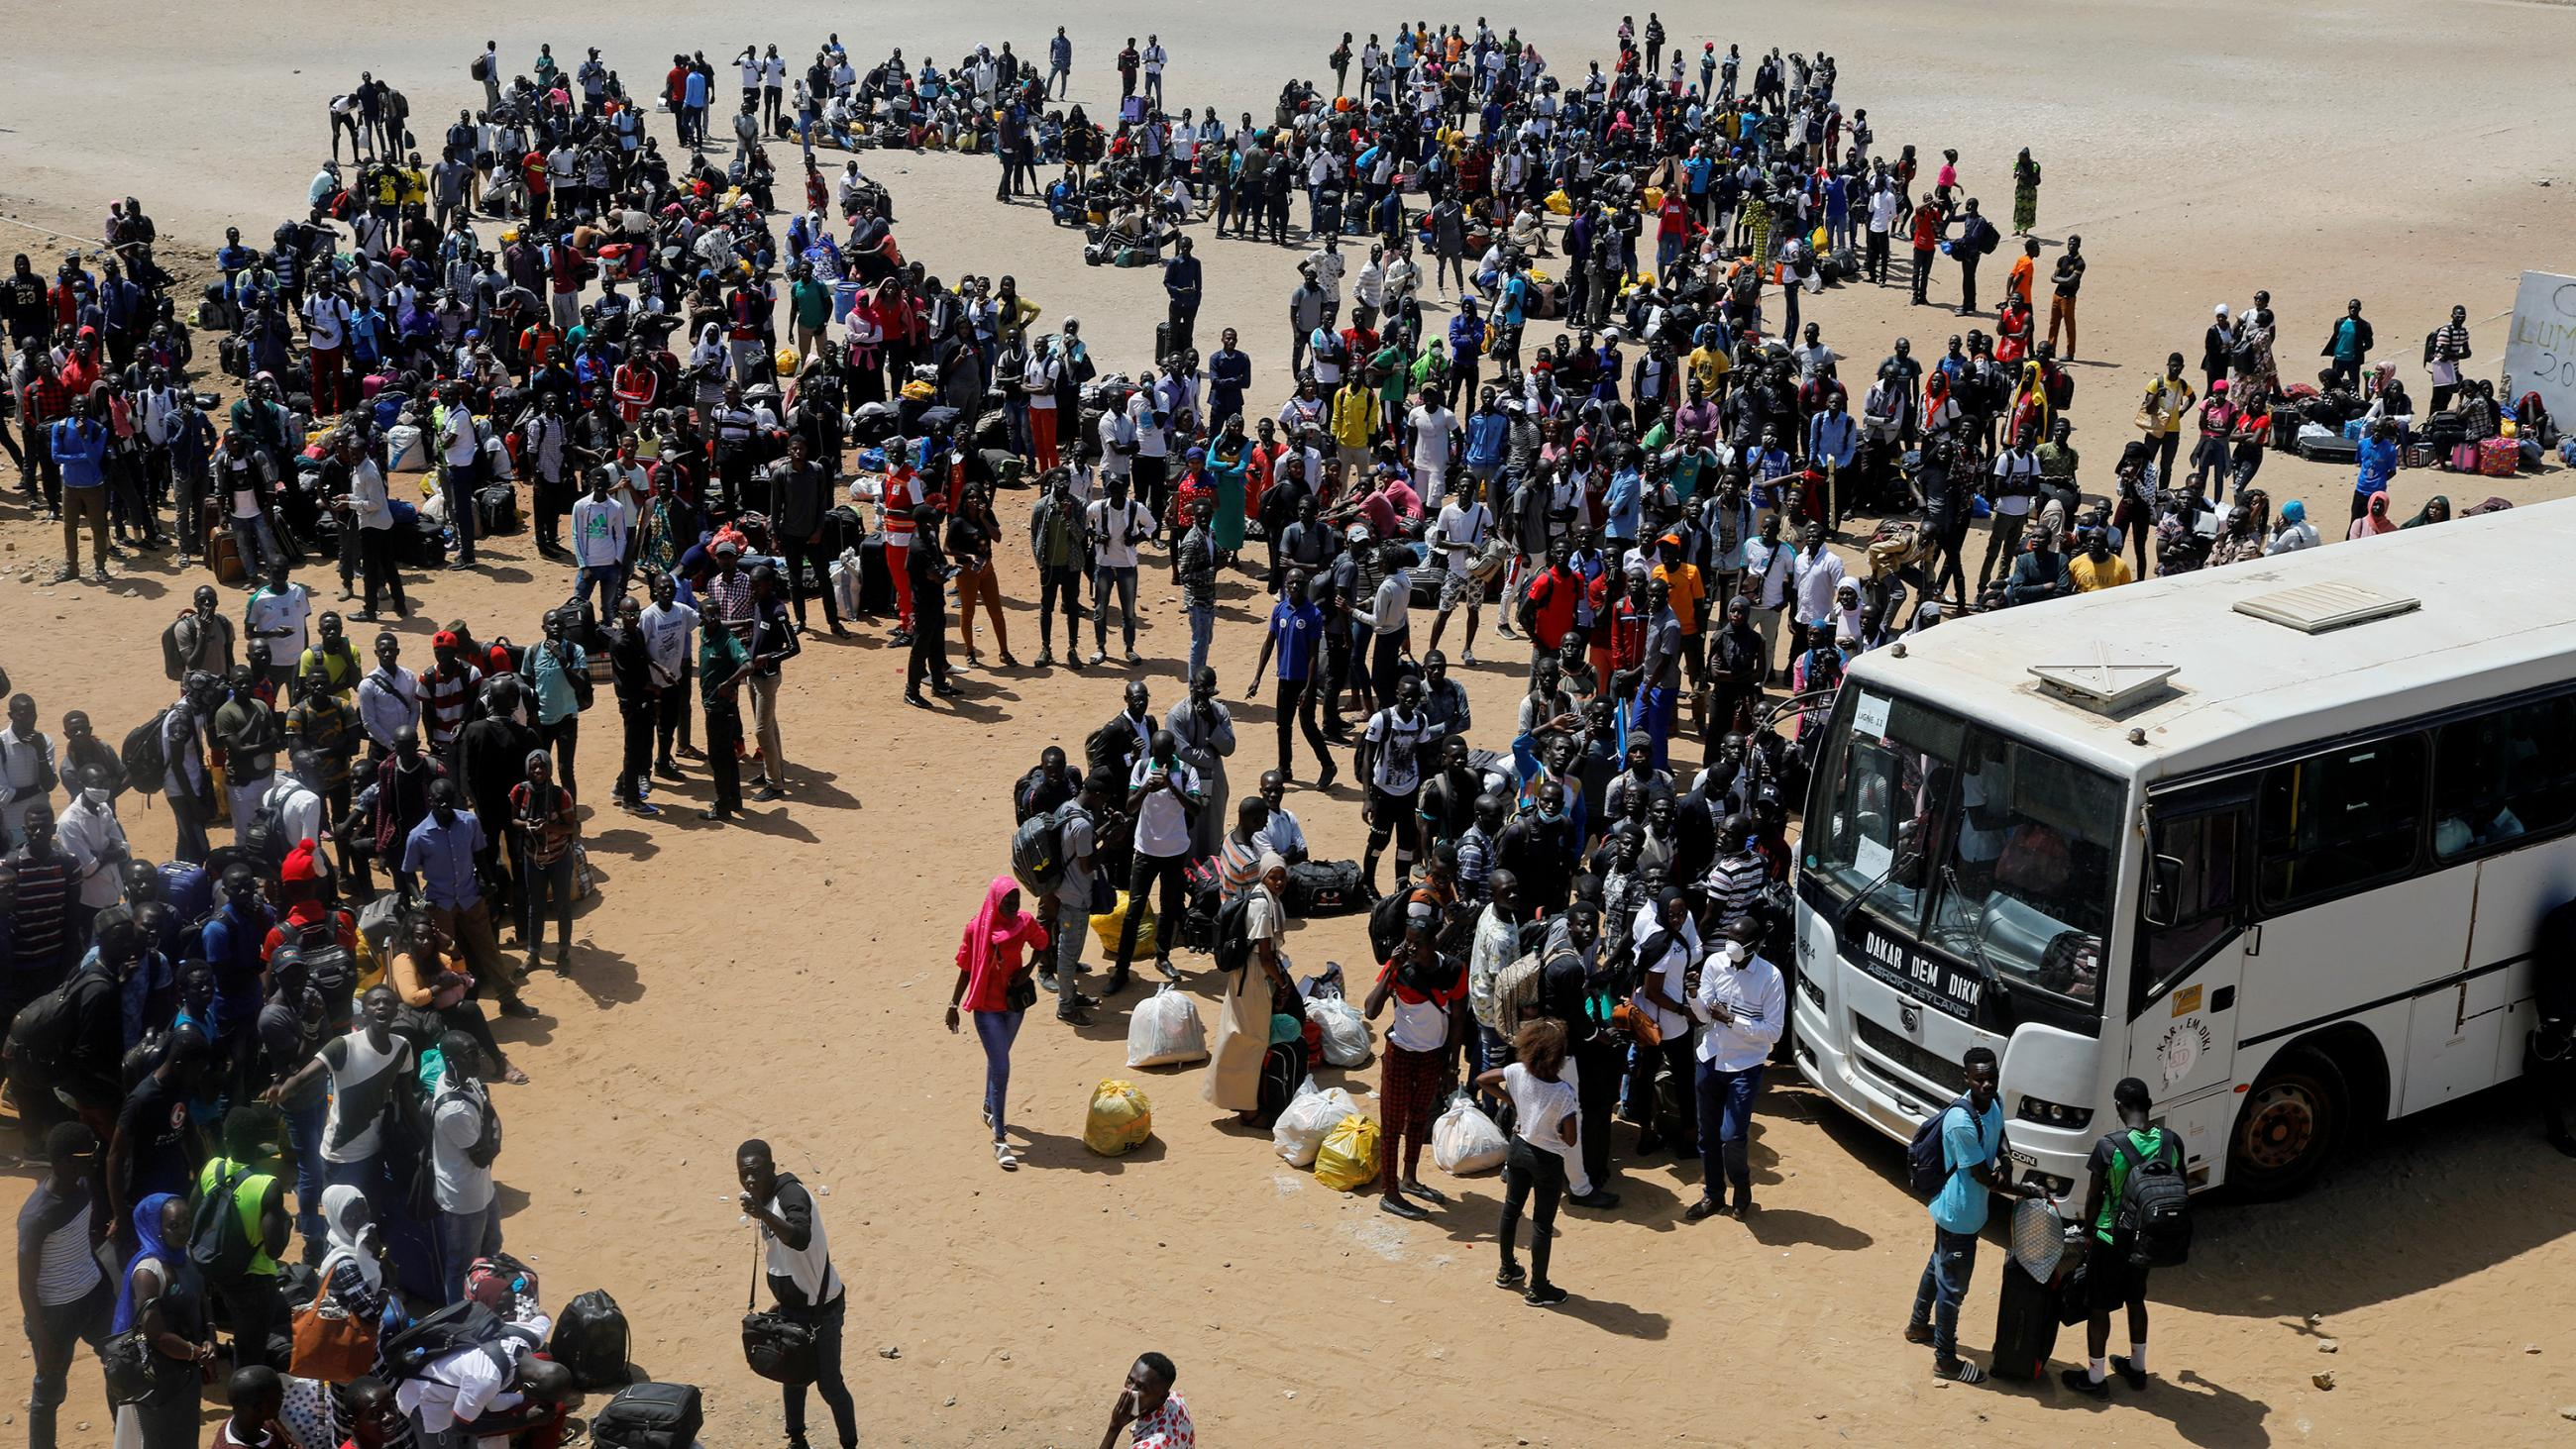 The image is a distance shot of a huge crowd of students with bags in an open area with a single lage bus parked.